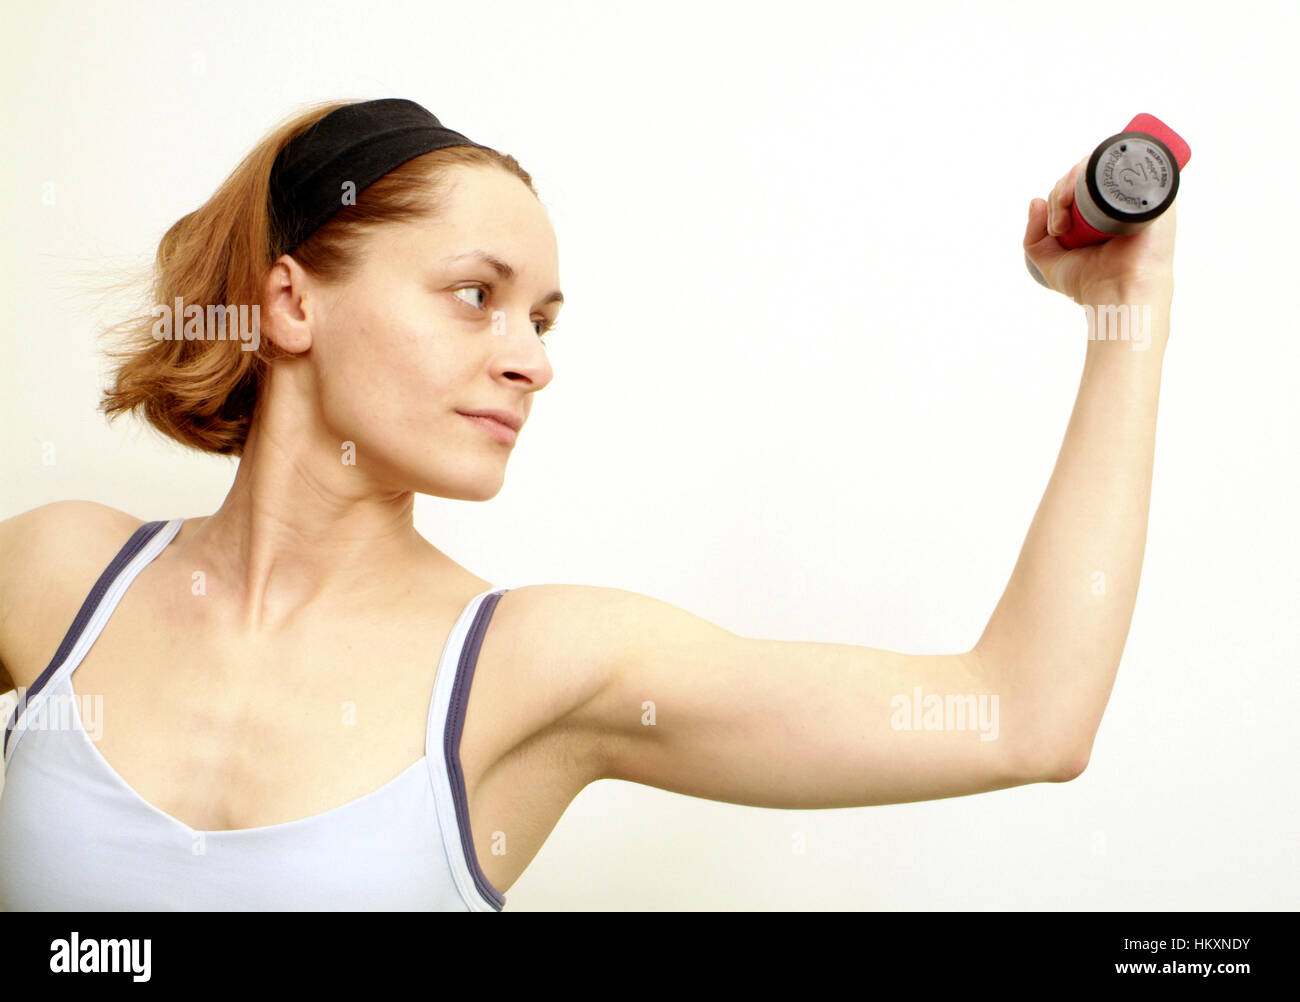 Woman trains with dumbbells - Stock Image